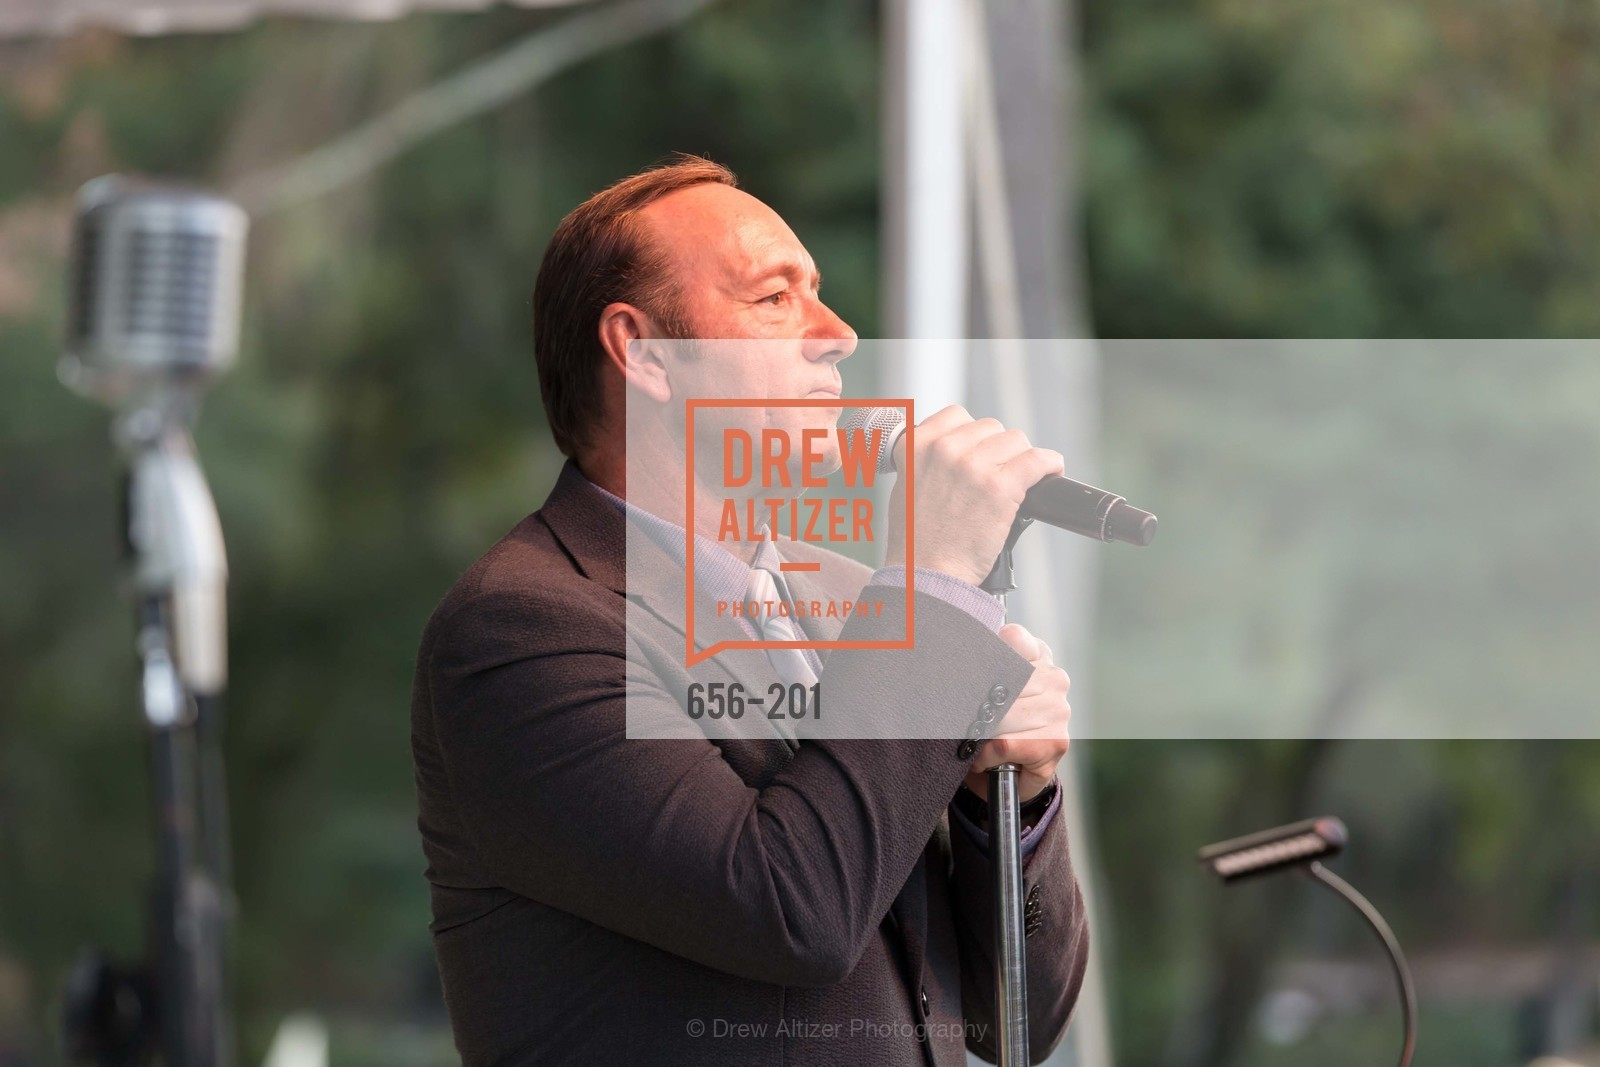 Kevin Spacey, Photo #656-201